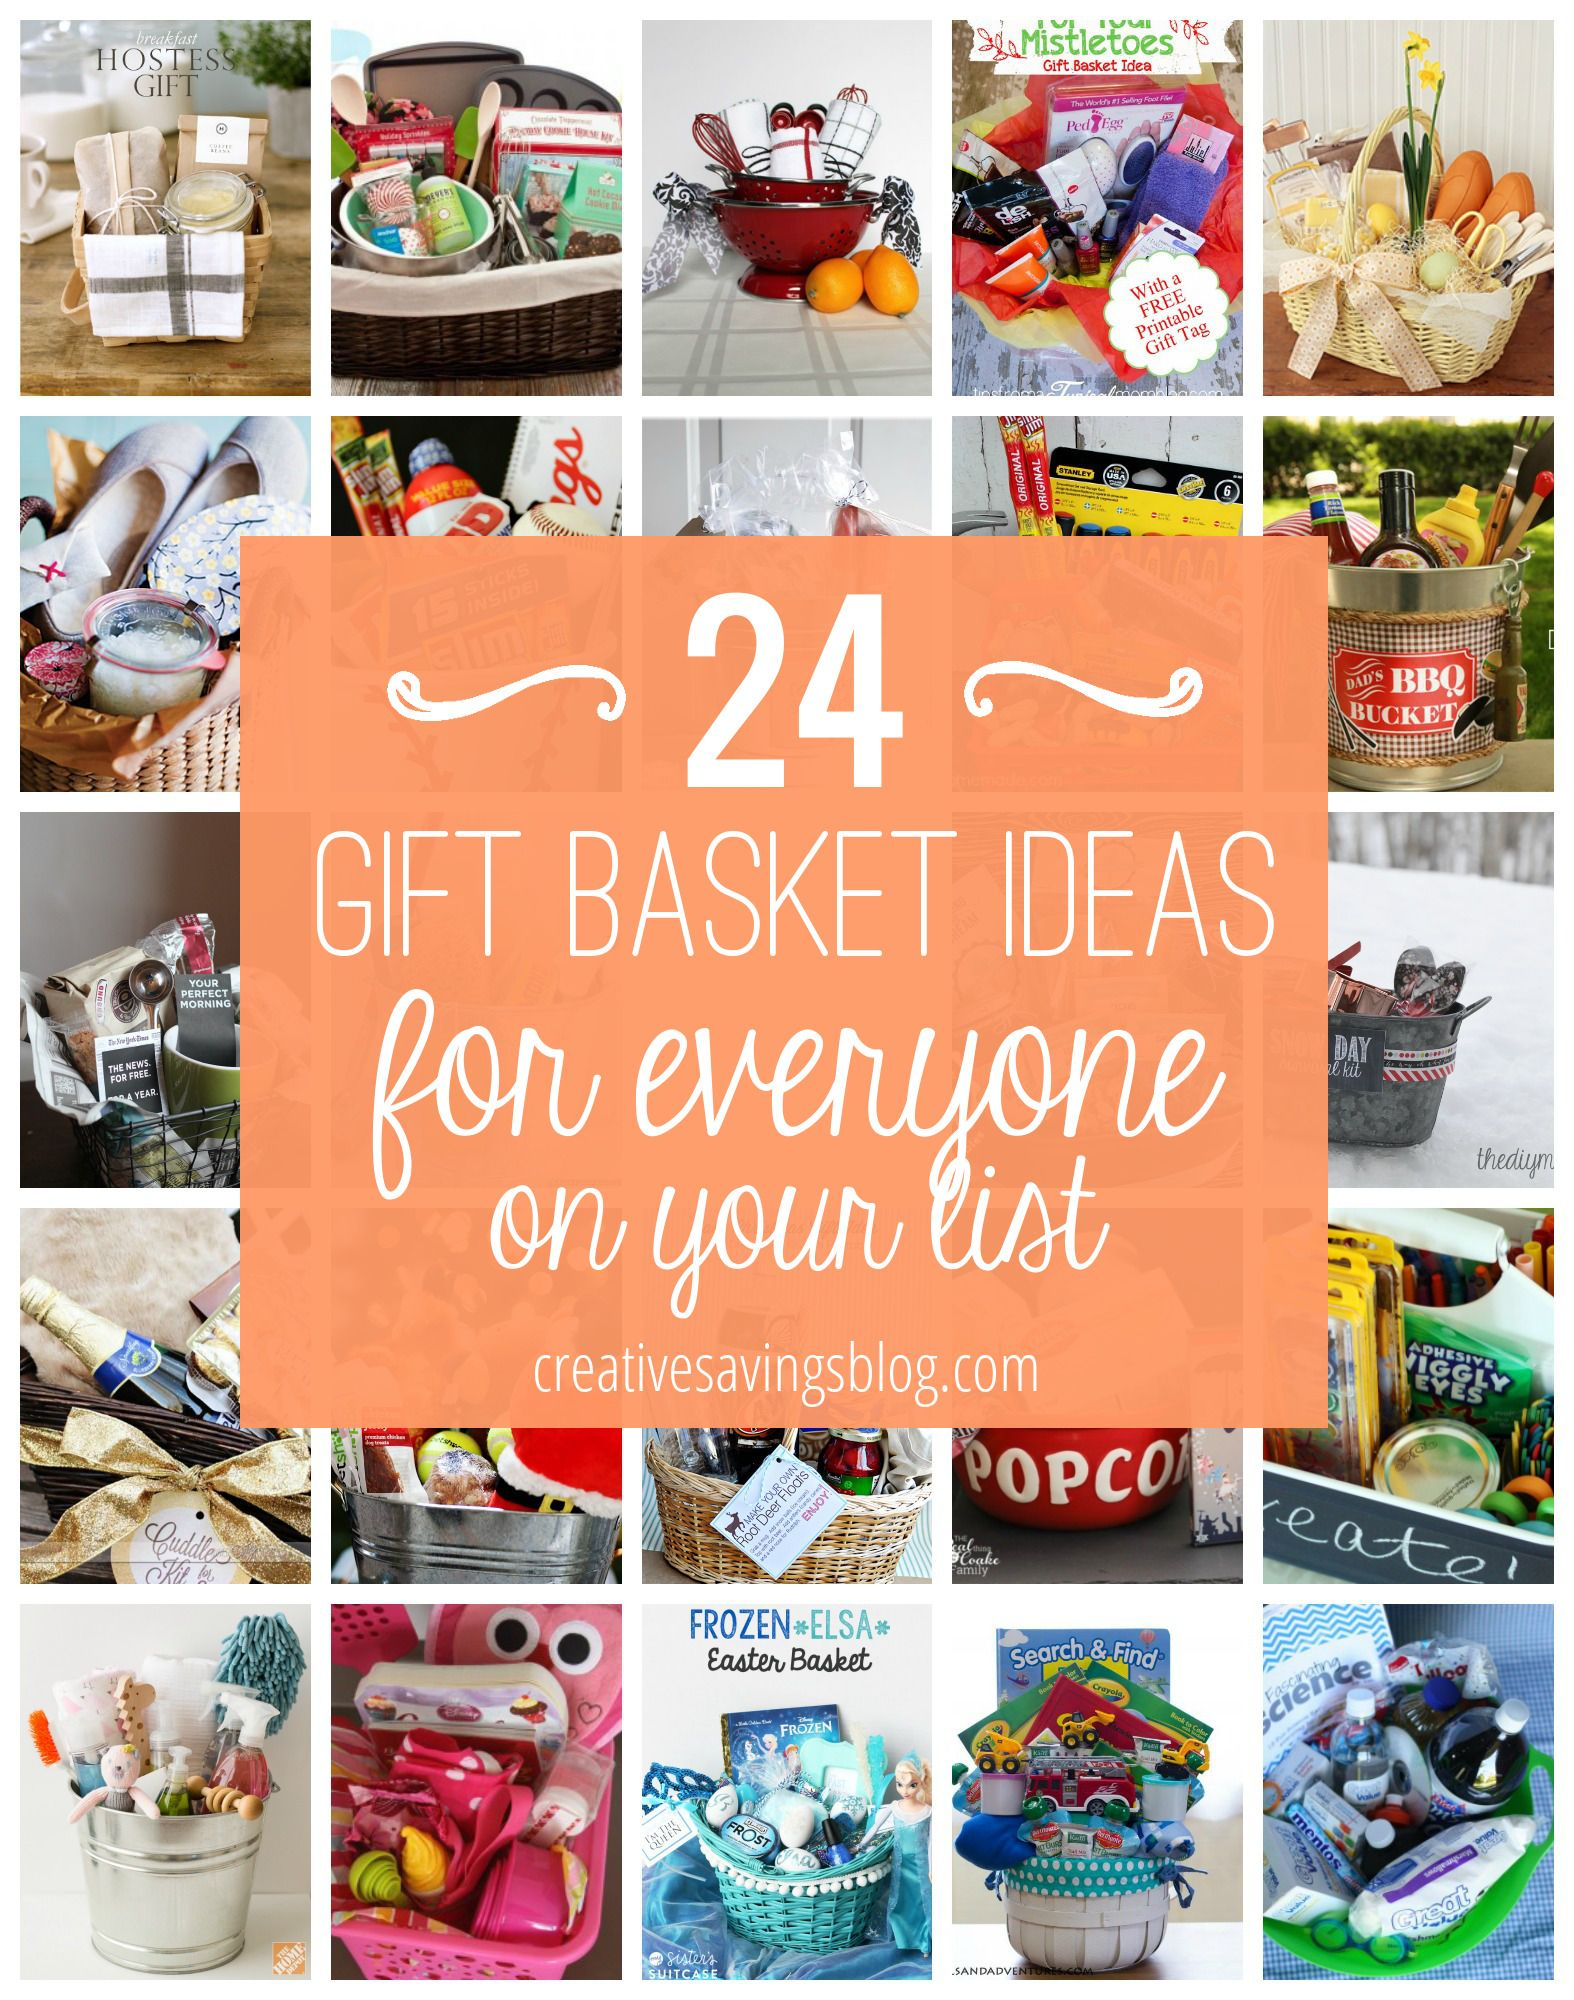 Diy gift basket ideas for everyone on your list basket ideas diy gift basket ideas for everyone on your list negle Choice Image